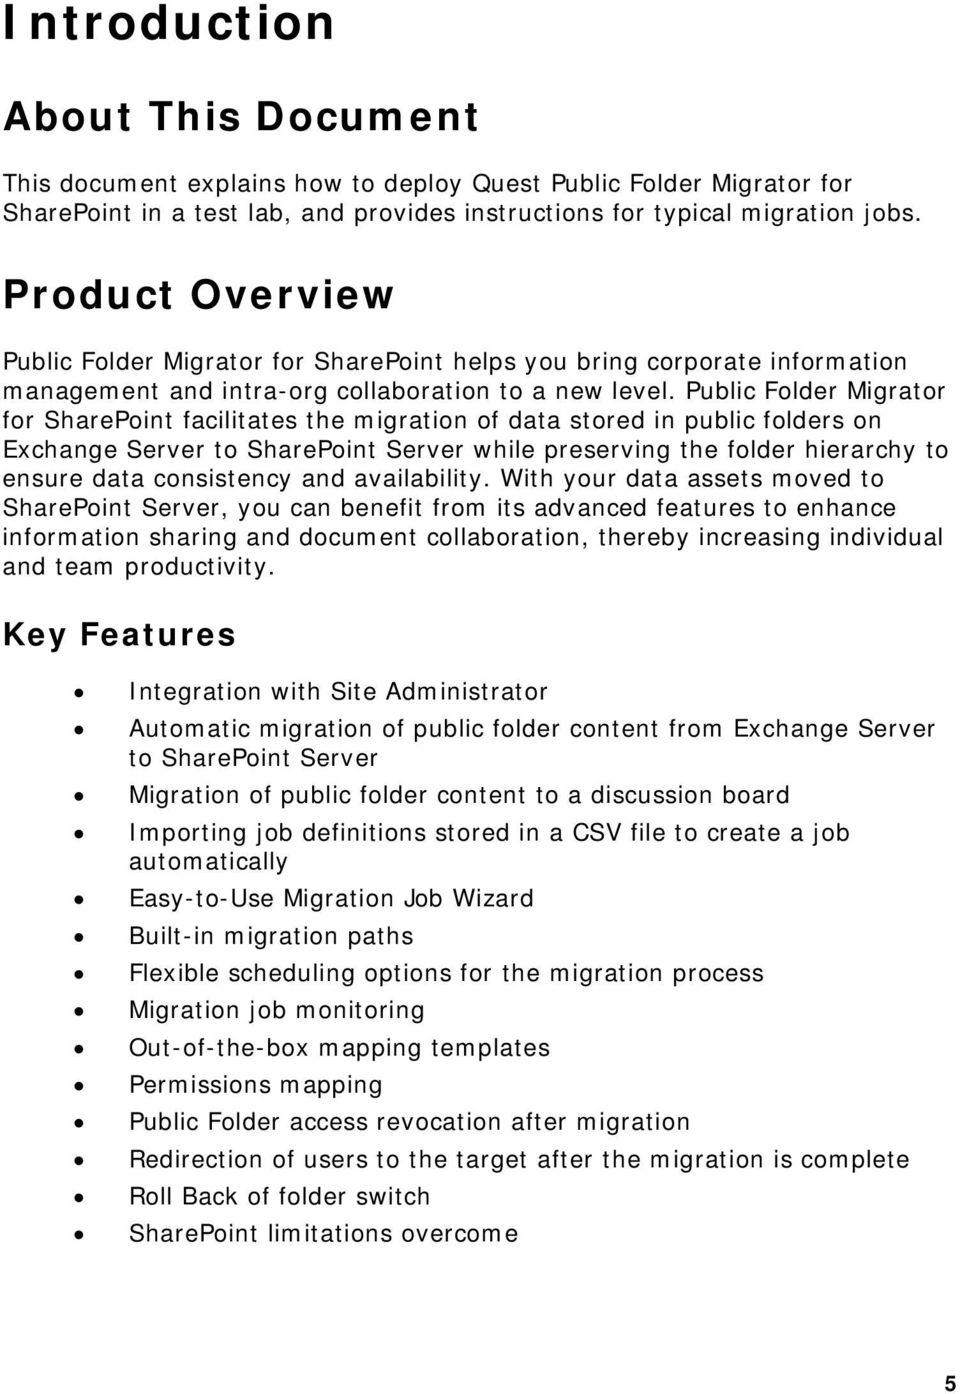 Public Folder Migrator for SharePoint facilitates the migration of data stored in public folders on Exchange Server to SharePoint Server while preserving the folder hierarchy to ensure data